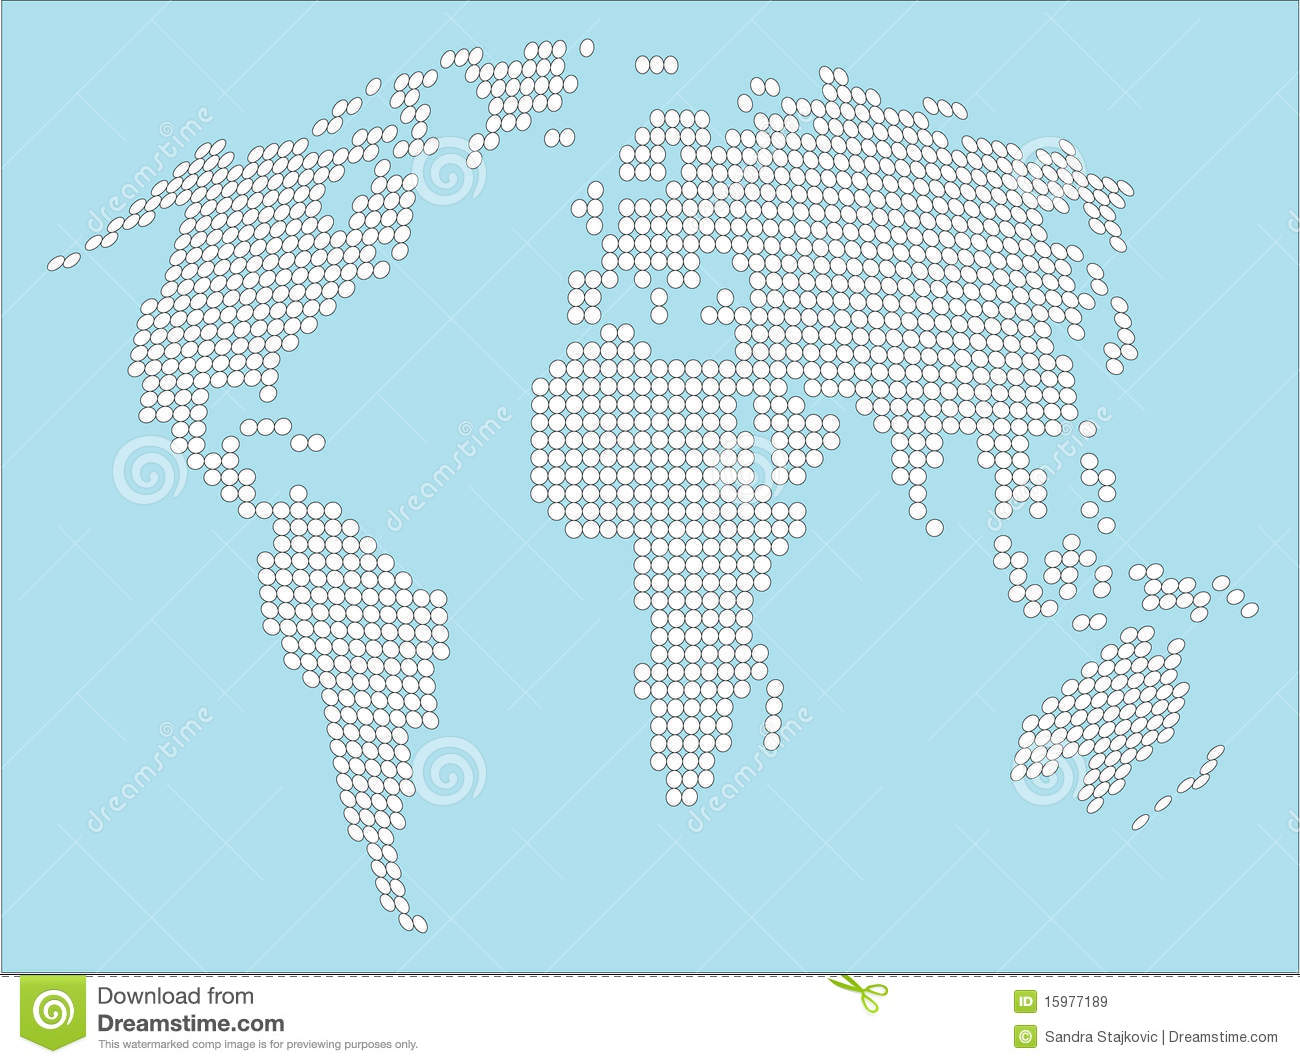 Stylized white dotted world map stock image image 15977189 stylized white dotted world map royalty free stock photo sciox Image collections